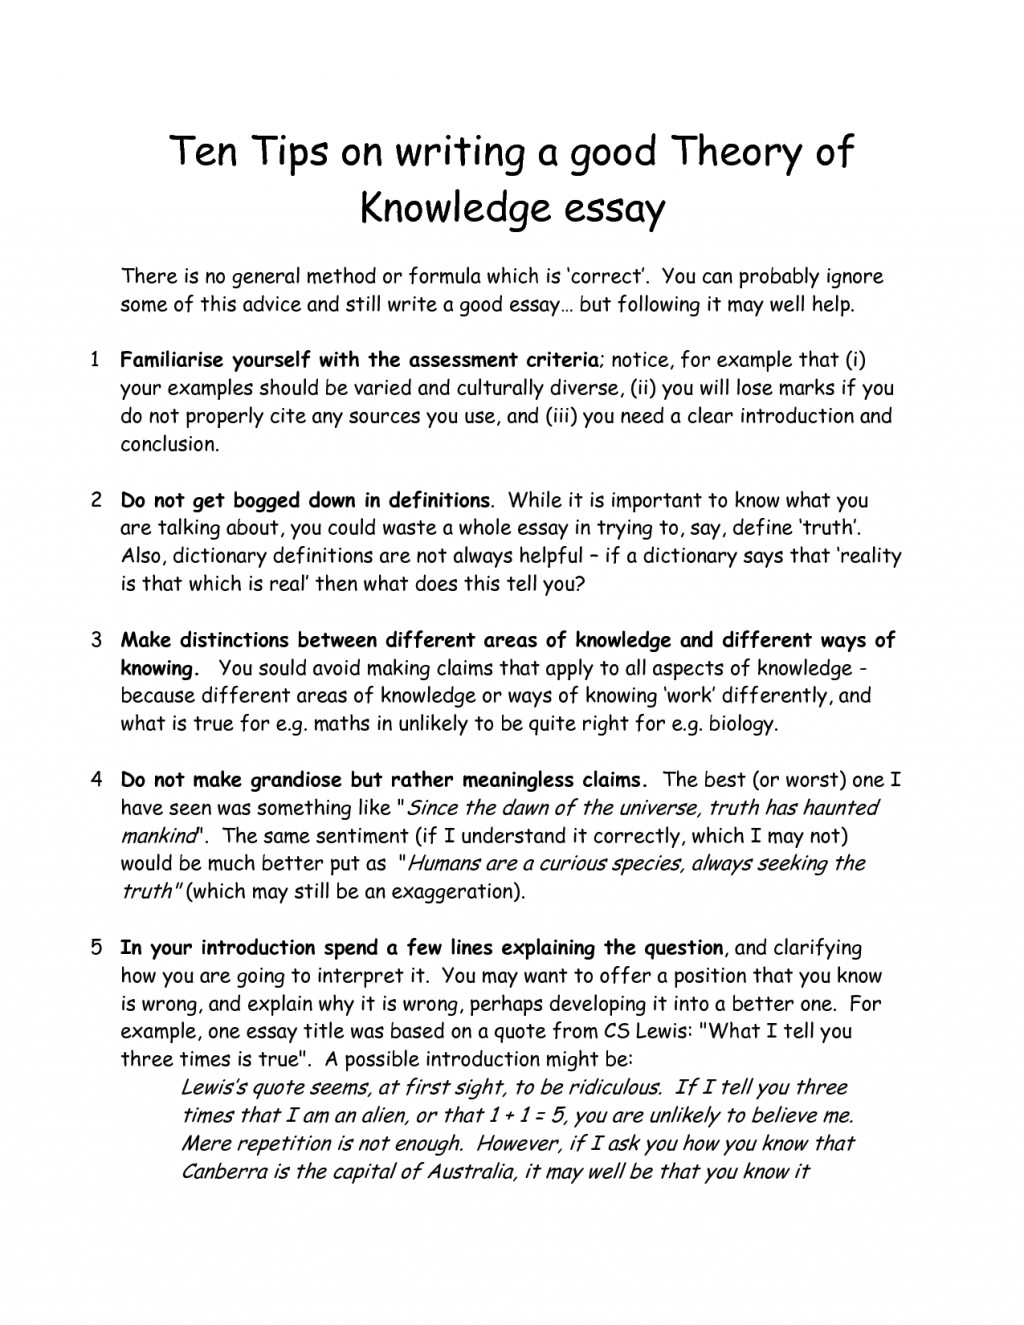 013 Essay Example Write Awful A About Your Best Friend Descriptive On Freedom Fighter Large